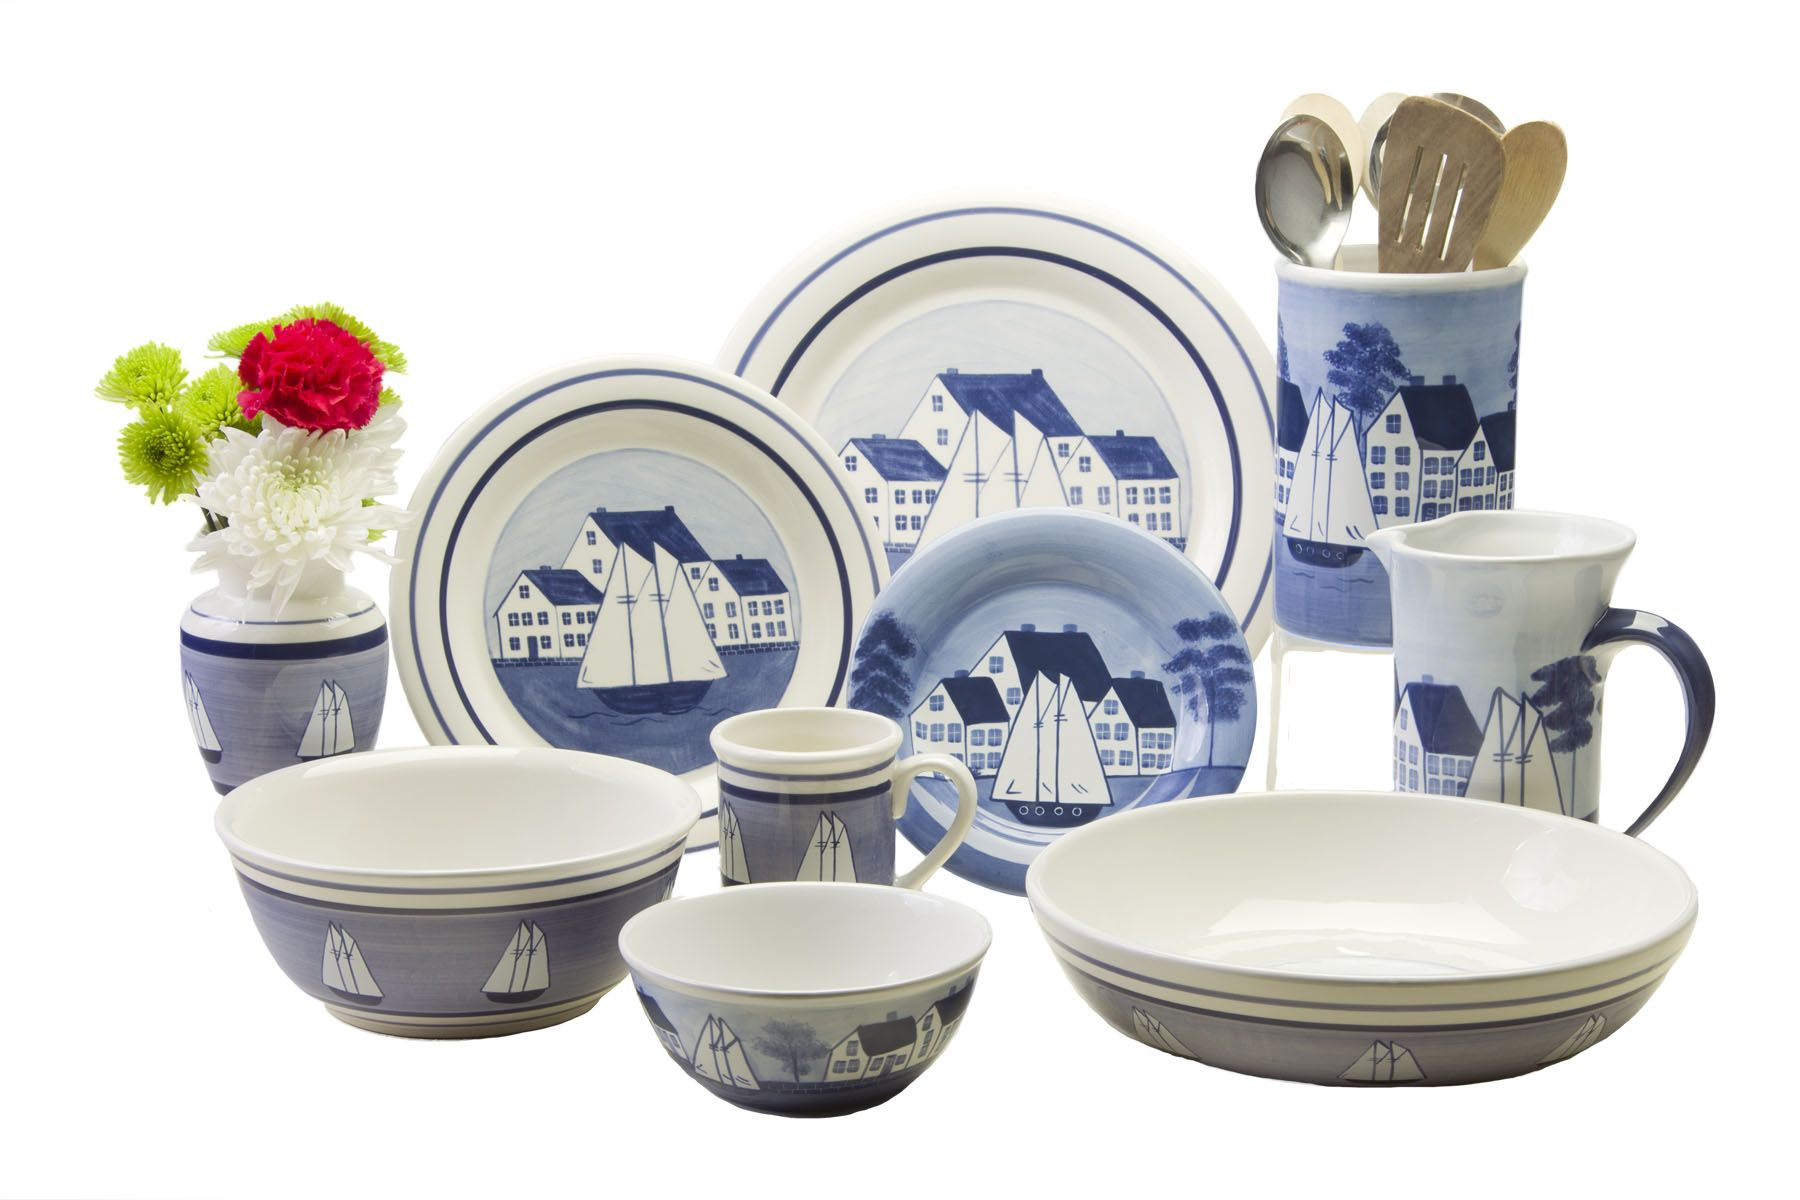 Coastal Village Dinnerware Blue and white dishes sailboat dishes coastal dishes  sc 1 st  Pinterest & Coastal Village Dinnerware Blue and white dishes sailboat dishes ...